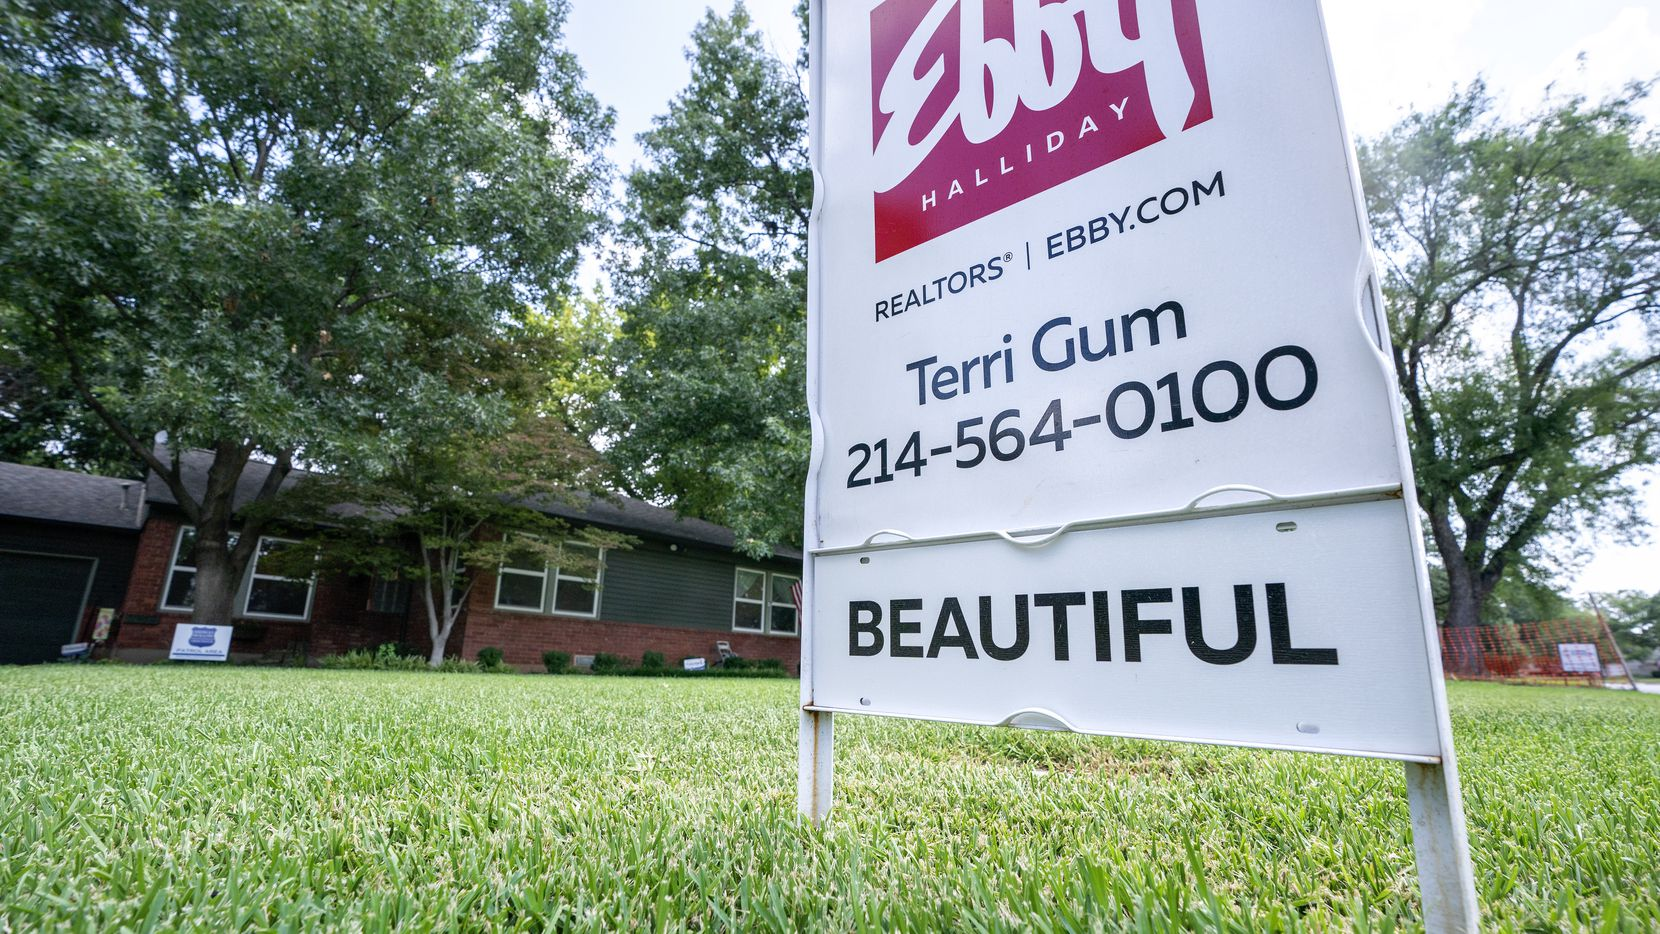 More than 920,000 D-FW homes changed hands during the last decade.